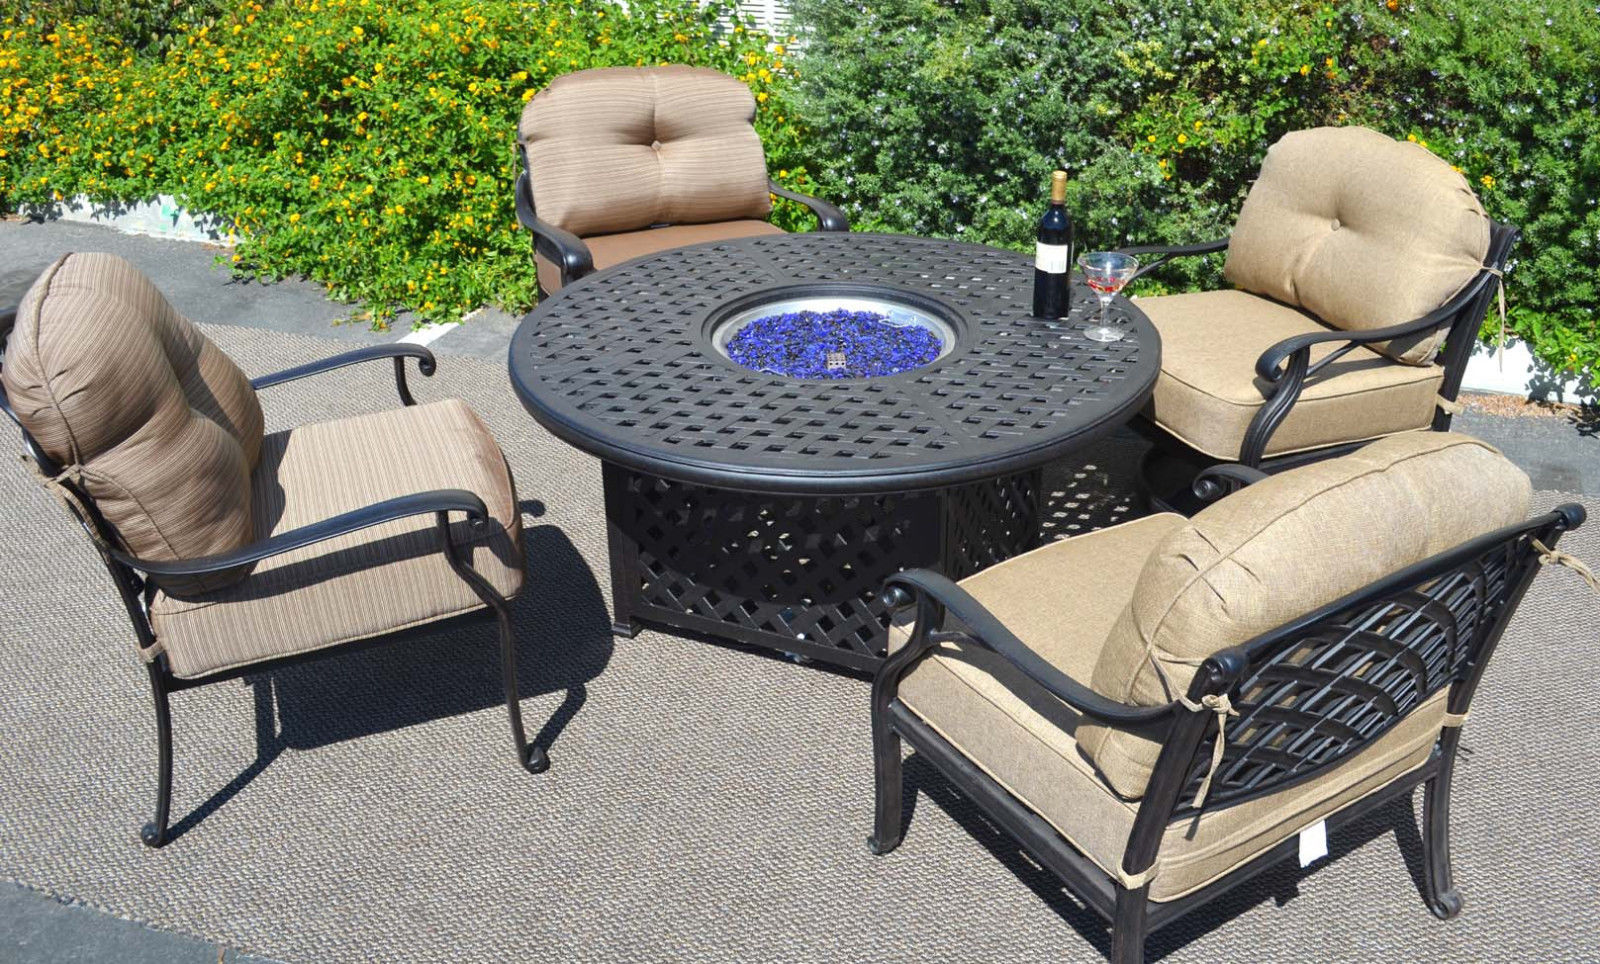 Outdoor fire pit propane table 5 pc dining set patio furniture Nassau aluminum